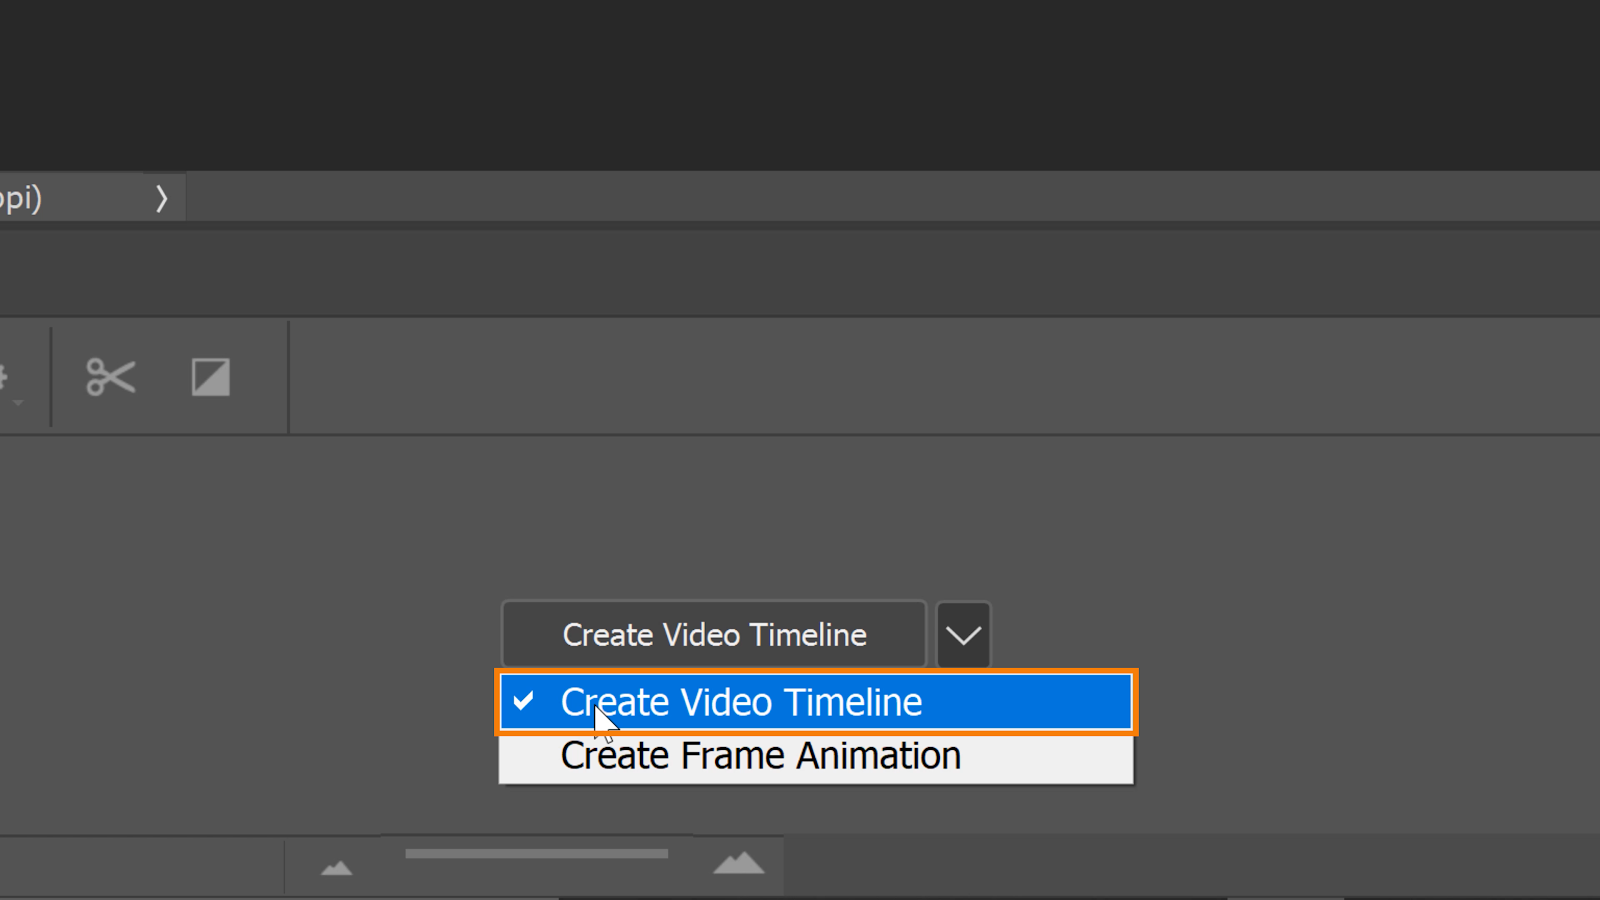 Click on the drop-down menu icon and select Create Video Timeline.